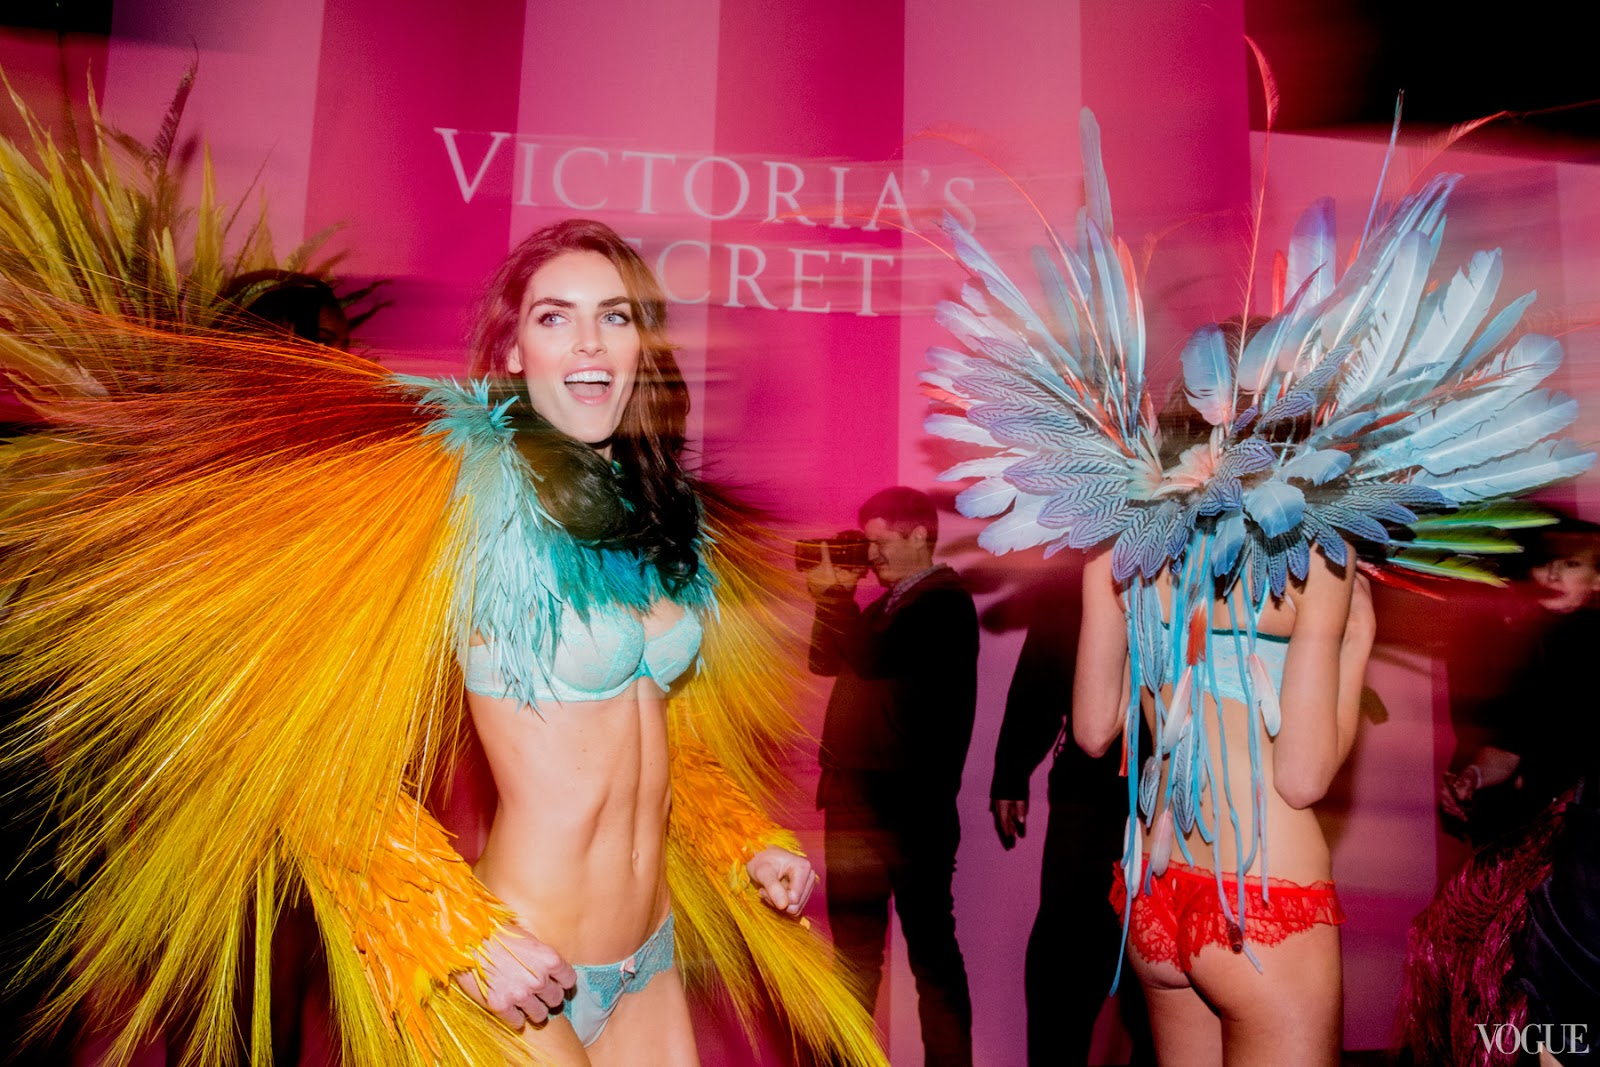 Once a cardholder earns points, they get a $10 Angel Reward, which counts for $10 off a future Victoria's Secret purchase. The first tier of the Victoria's Secret credit card is the Angel card.